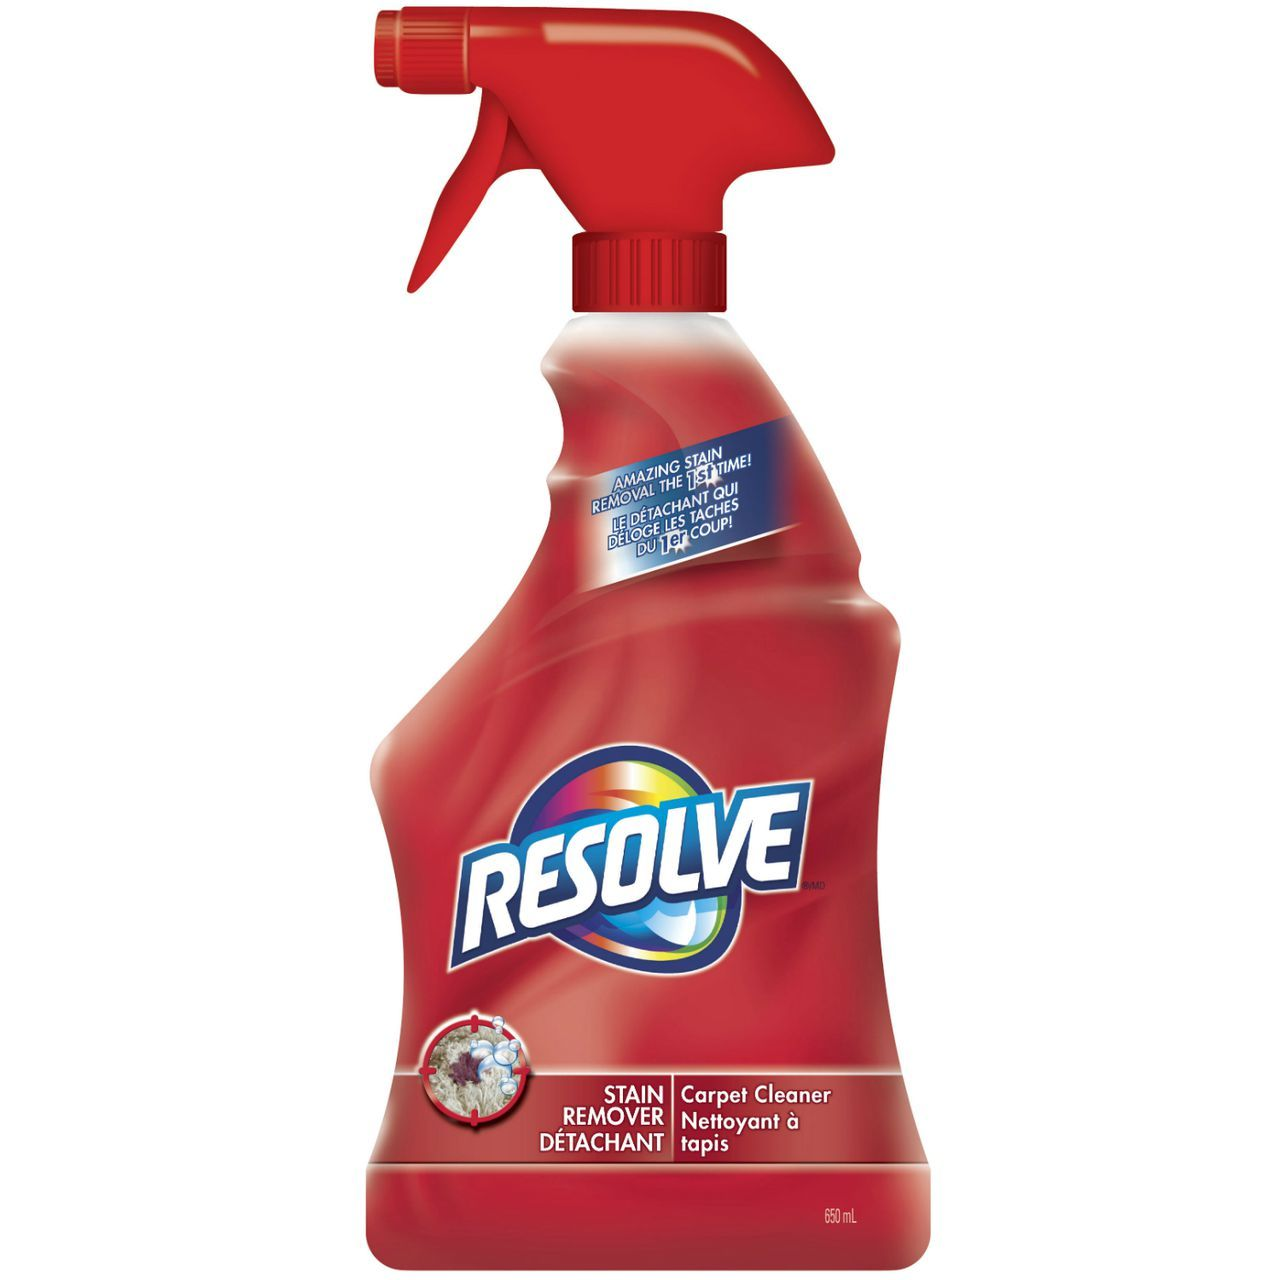 Perfect Resolve Triple Action Carpet Stain Remover Trigger Sds And View Stain Remover Carpet Carpet Cleaners Carpet Stains